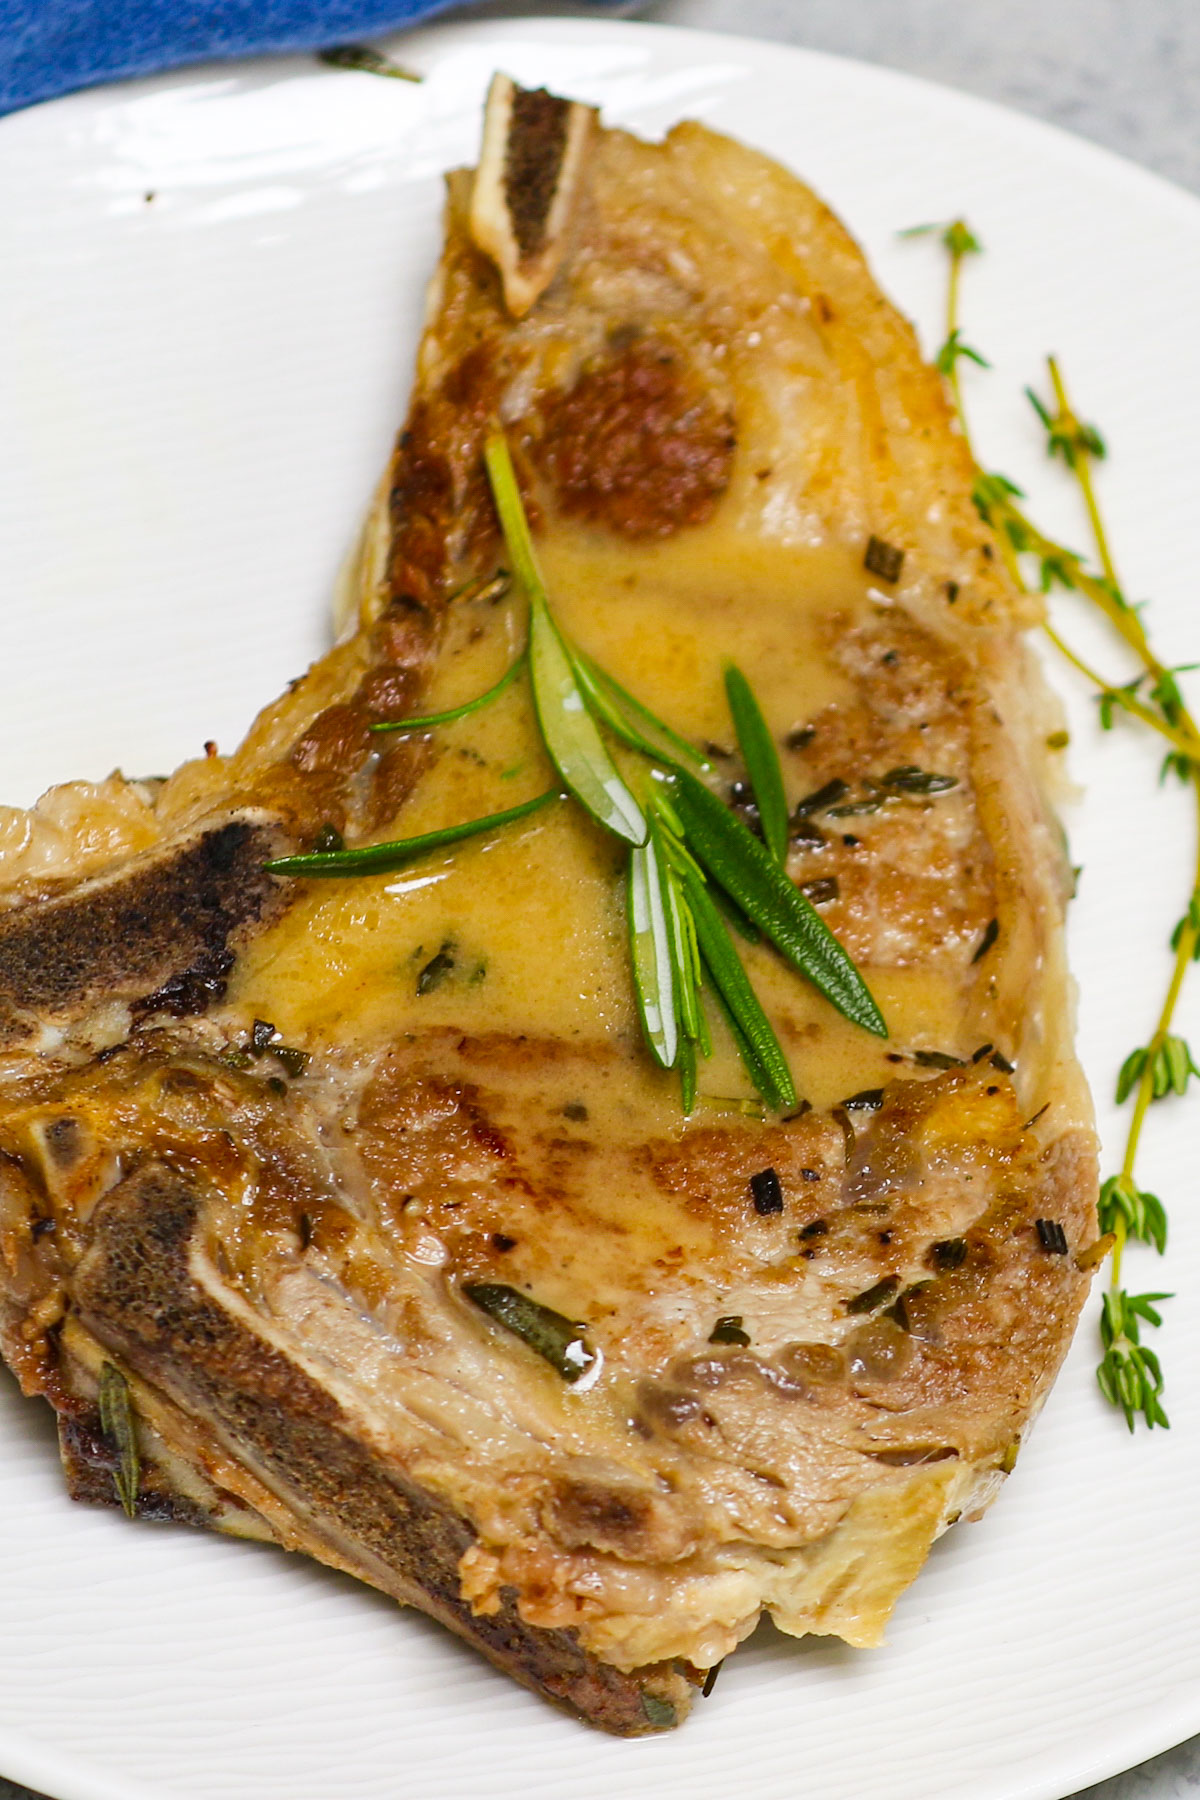 These Veal Chops are quick and easy to make, with a taste that's better than a Michelin star restaurant. Bone-in veal chops are marinated with fresh rosemary, thyme, salt, and pepper, then tenderized to succulent perfection! Drizzle them with homemade rosemary butter sauce for the most delicious dinner!